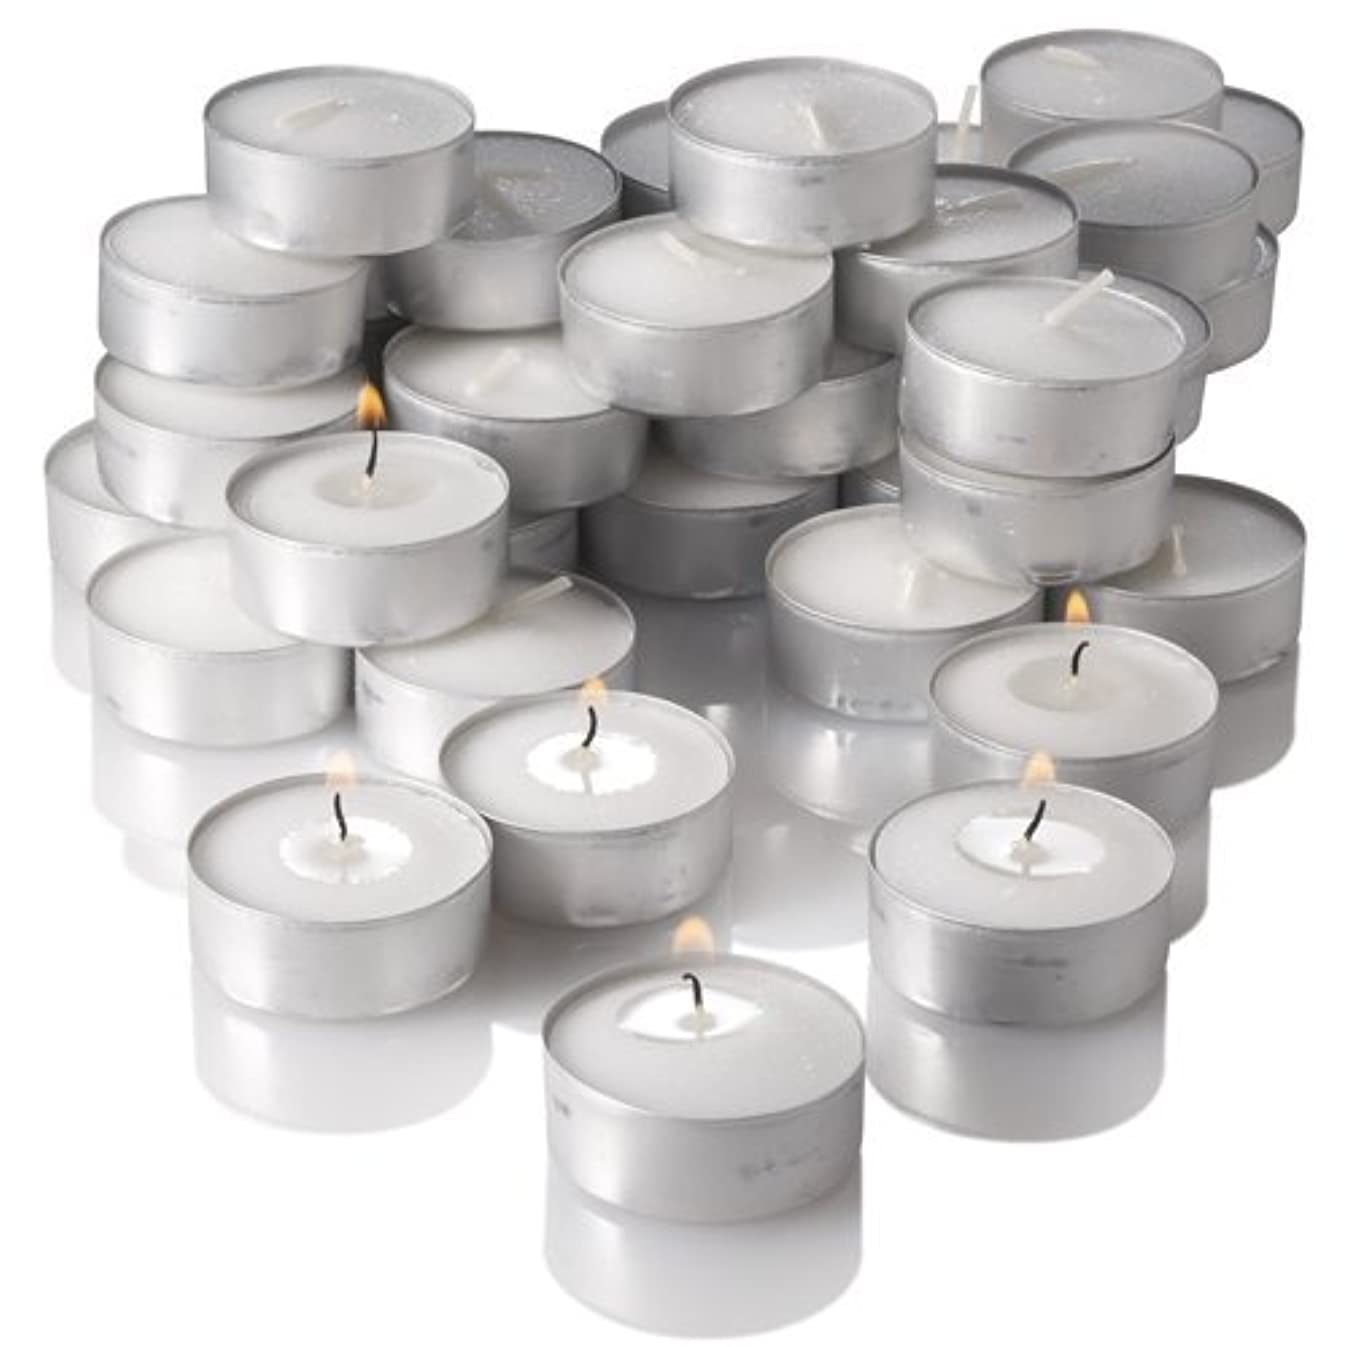 Richland Unscented Tealight Candles, White, Set of 125